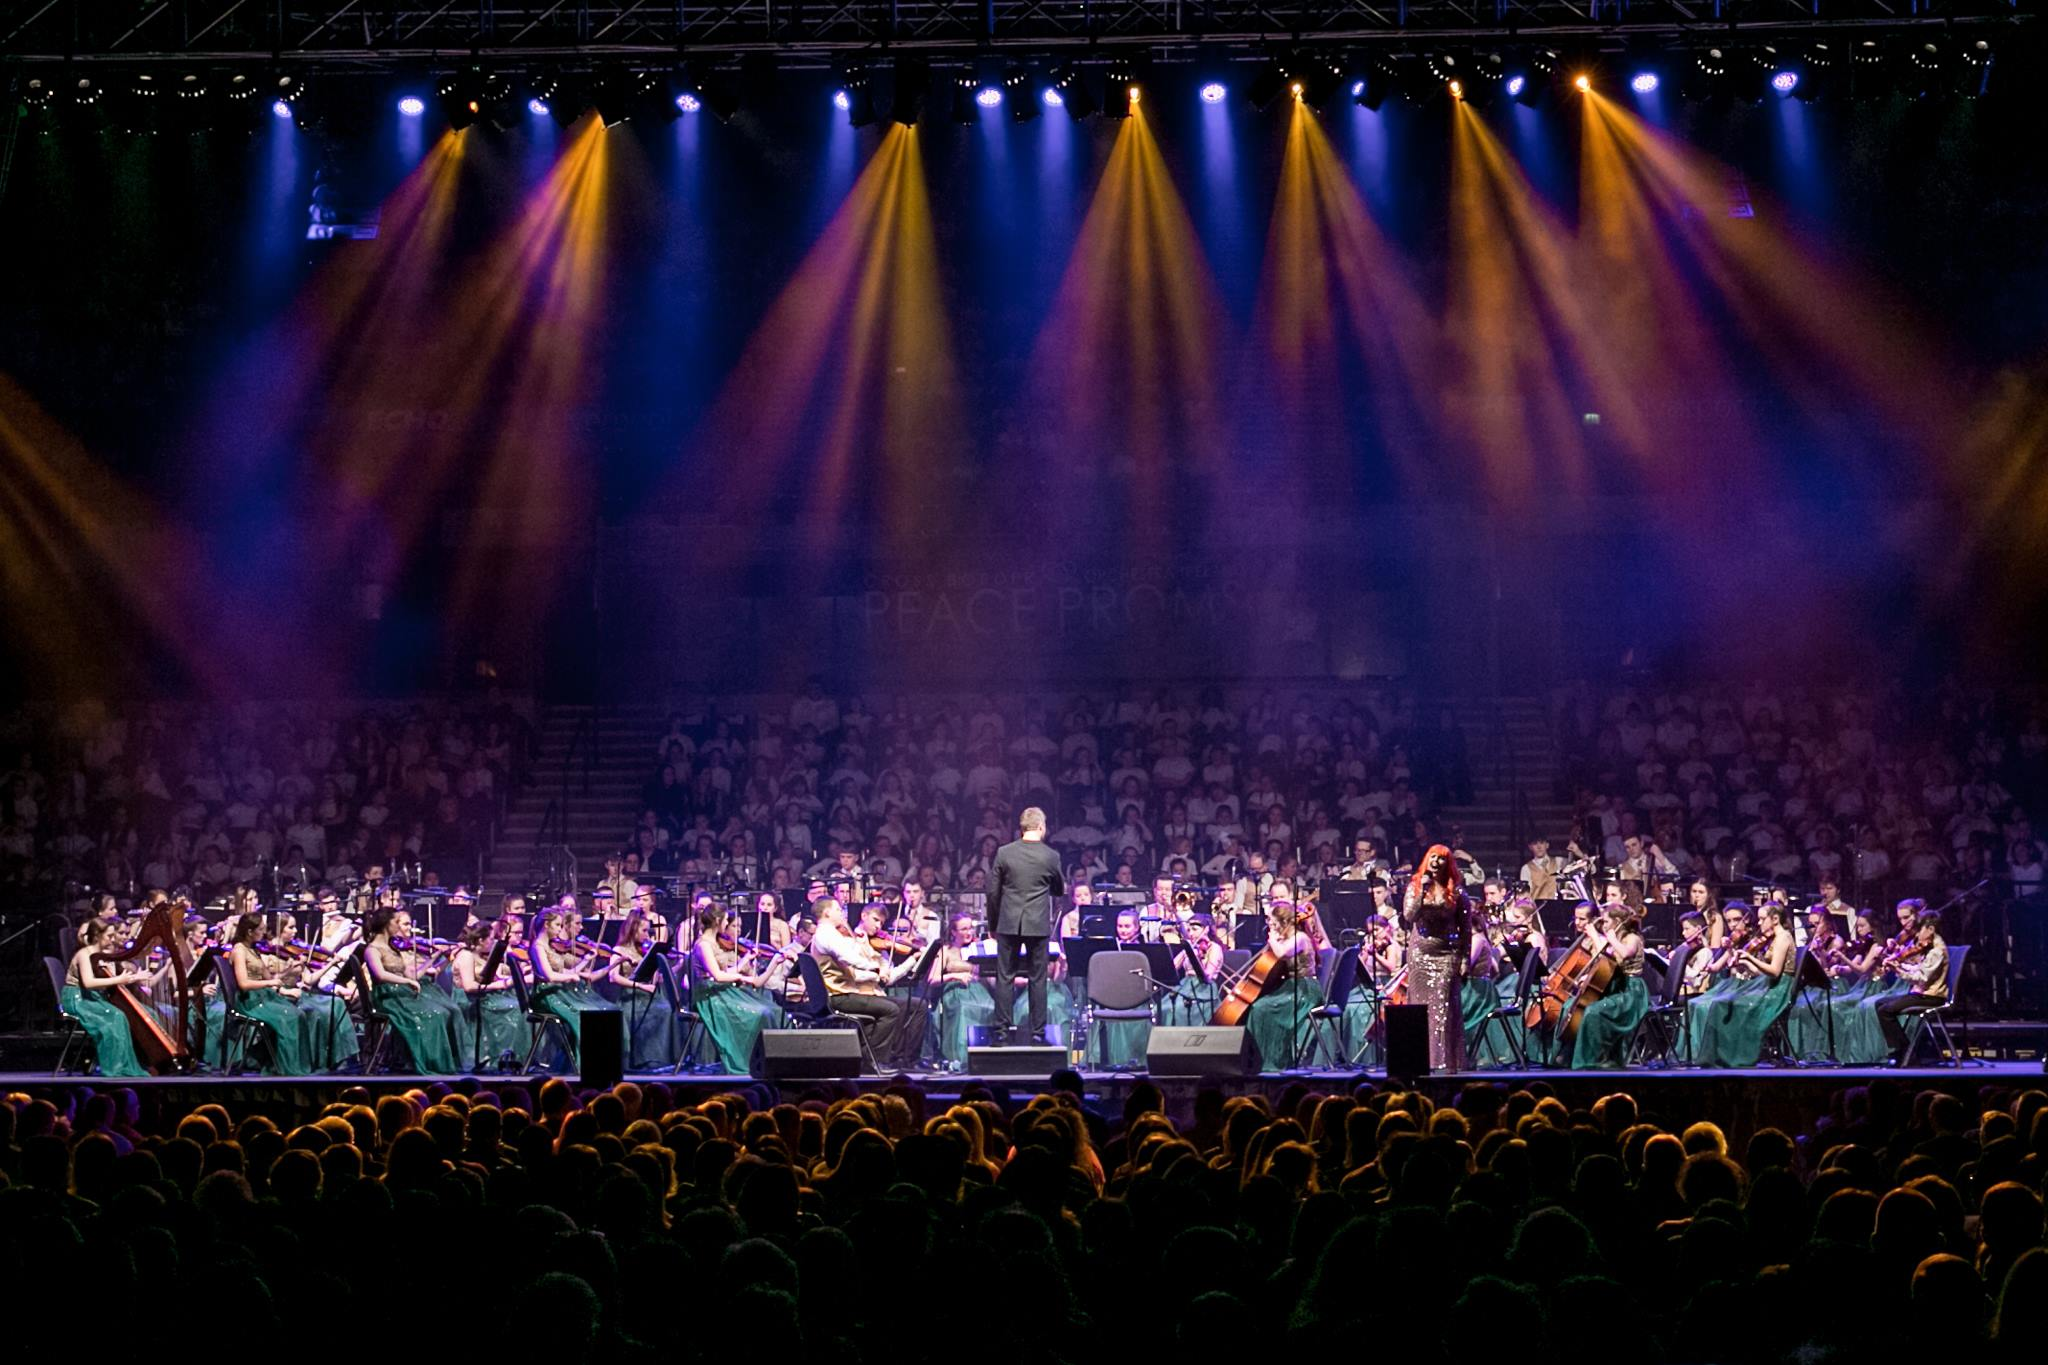 Peace Choir Lights Up Echo ArenaLiverpool Peace Proms